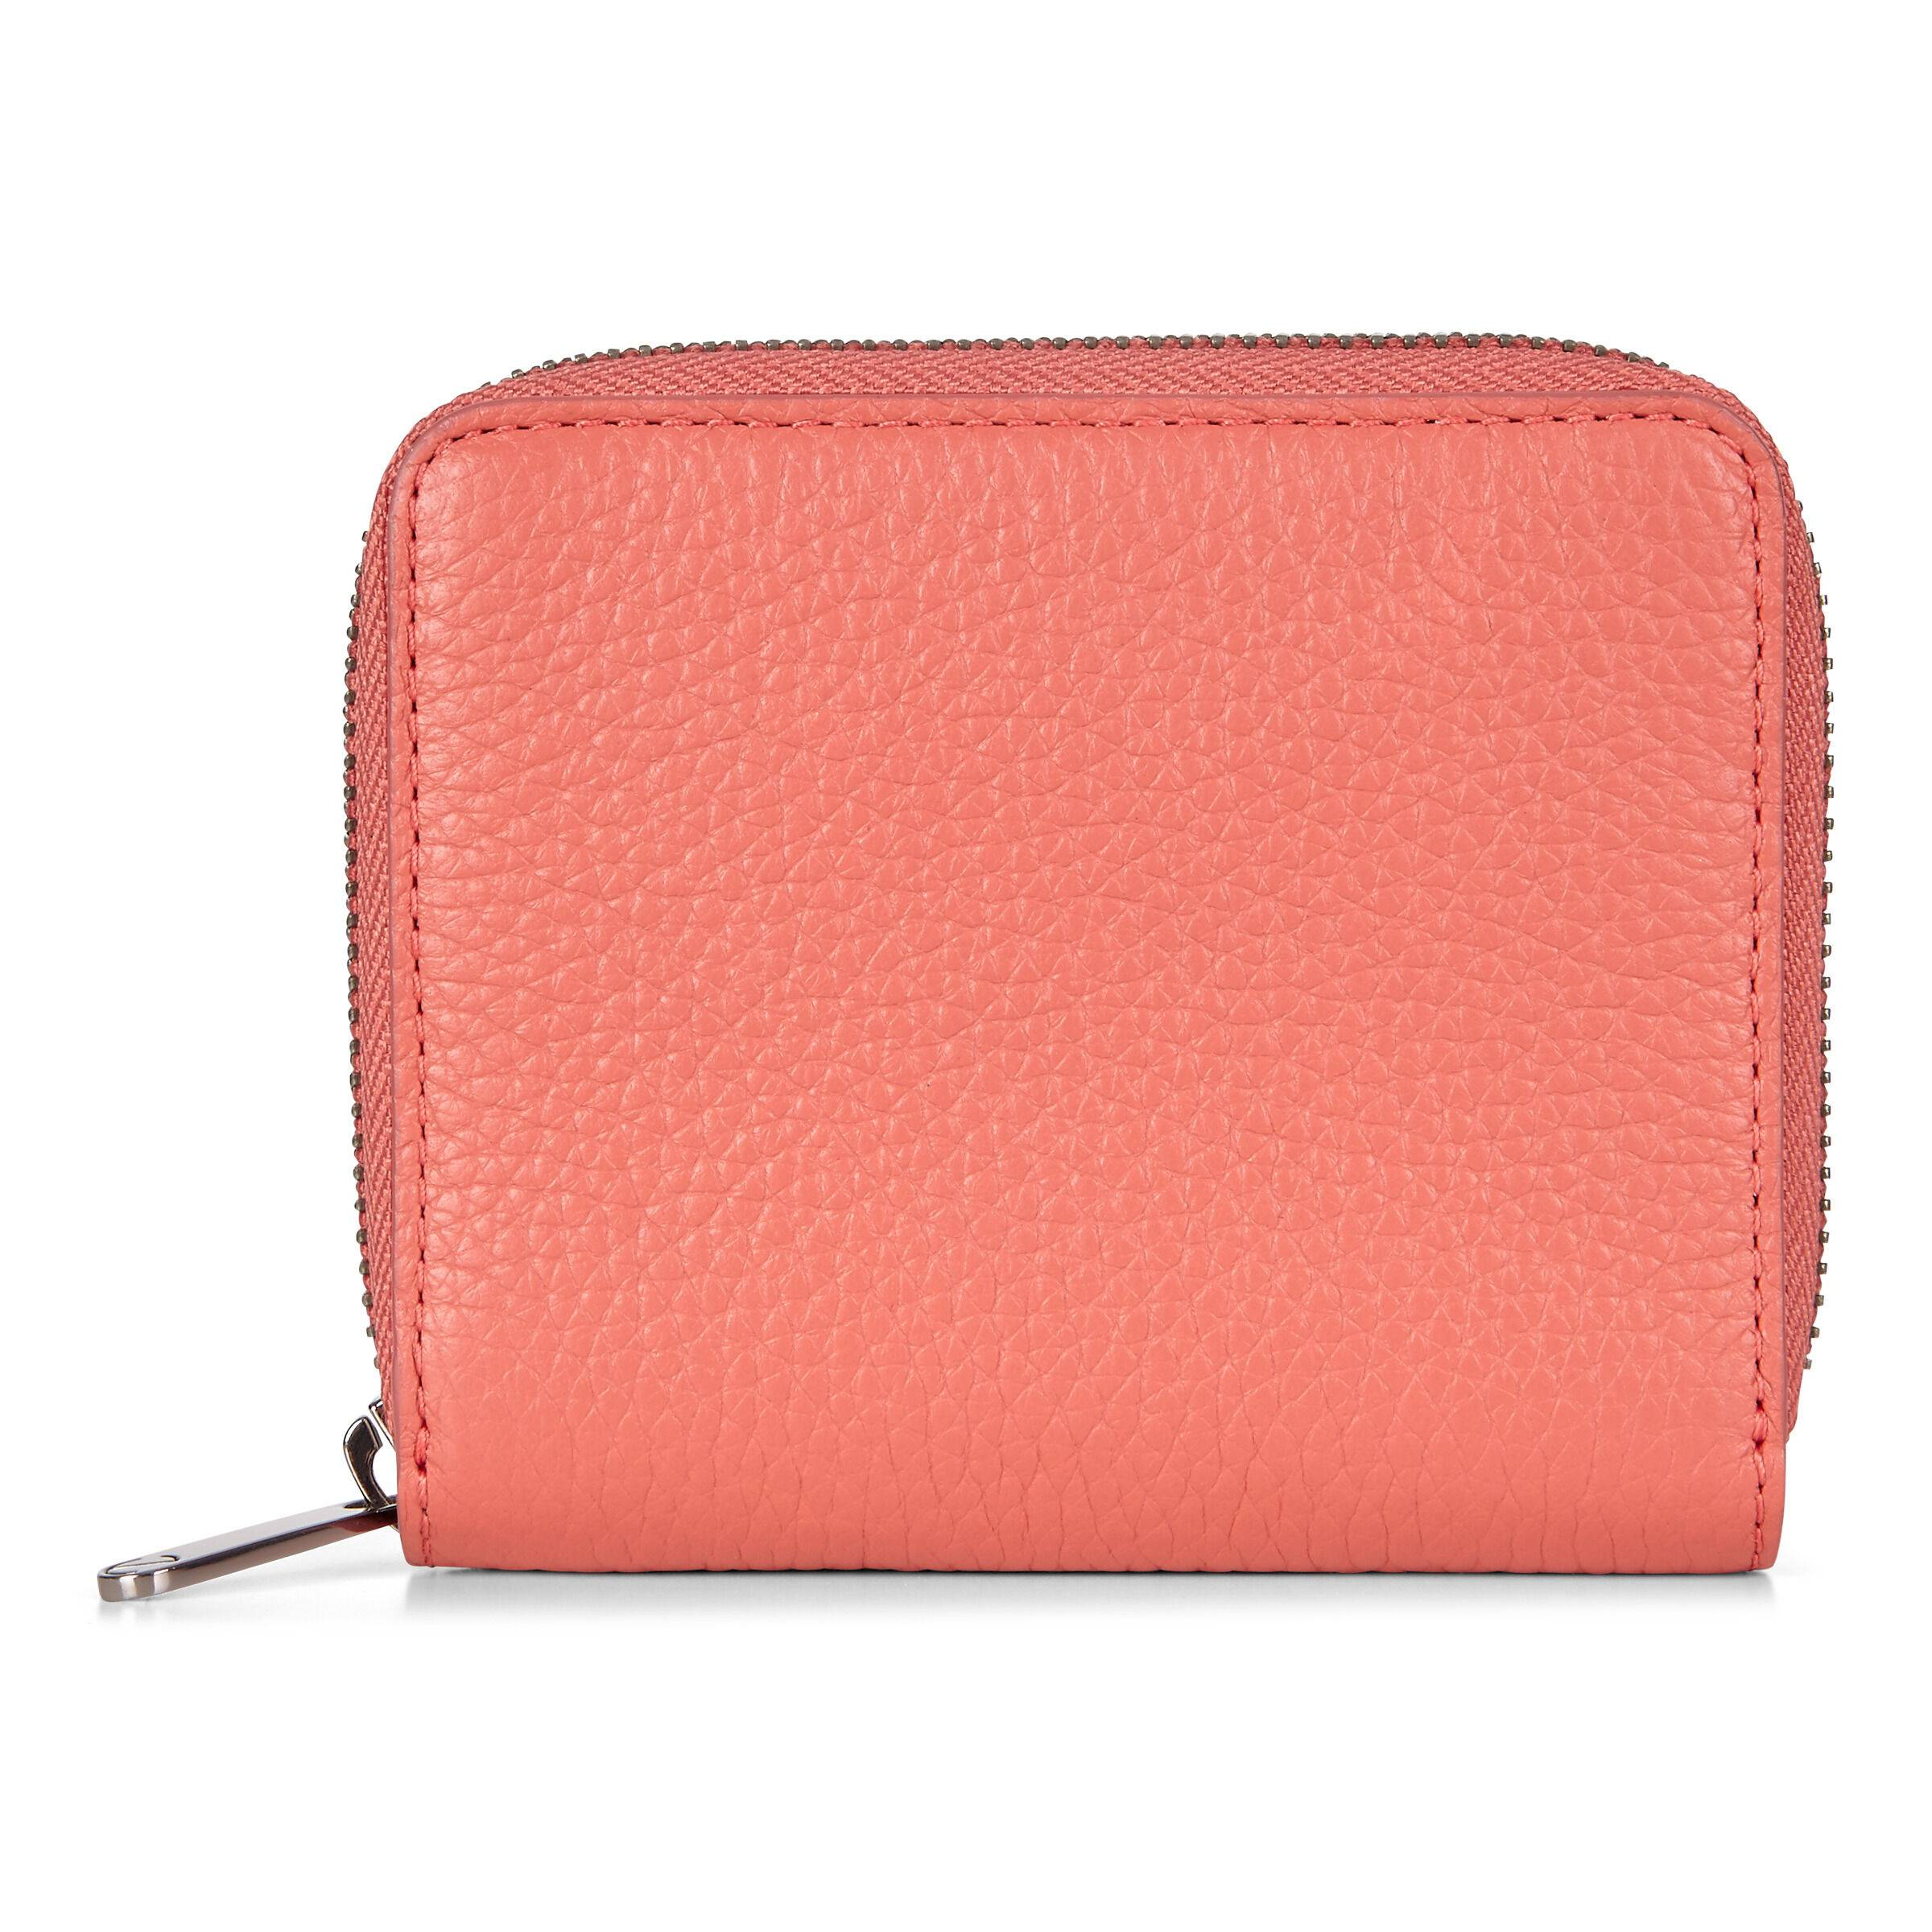 ECCO Sp 3 Small Zip Around Wallet: One Size - Apricot